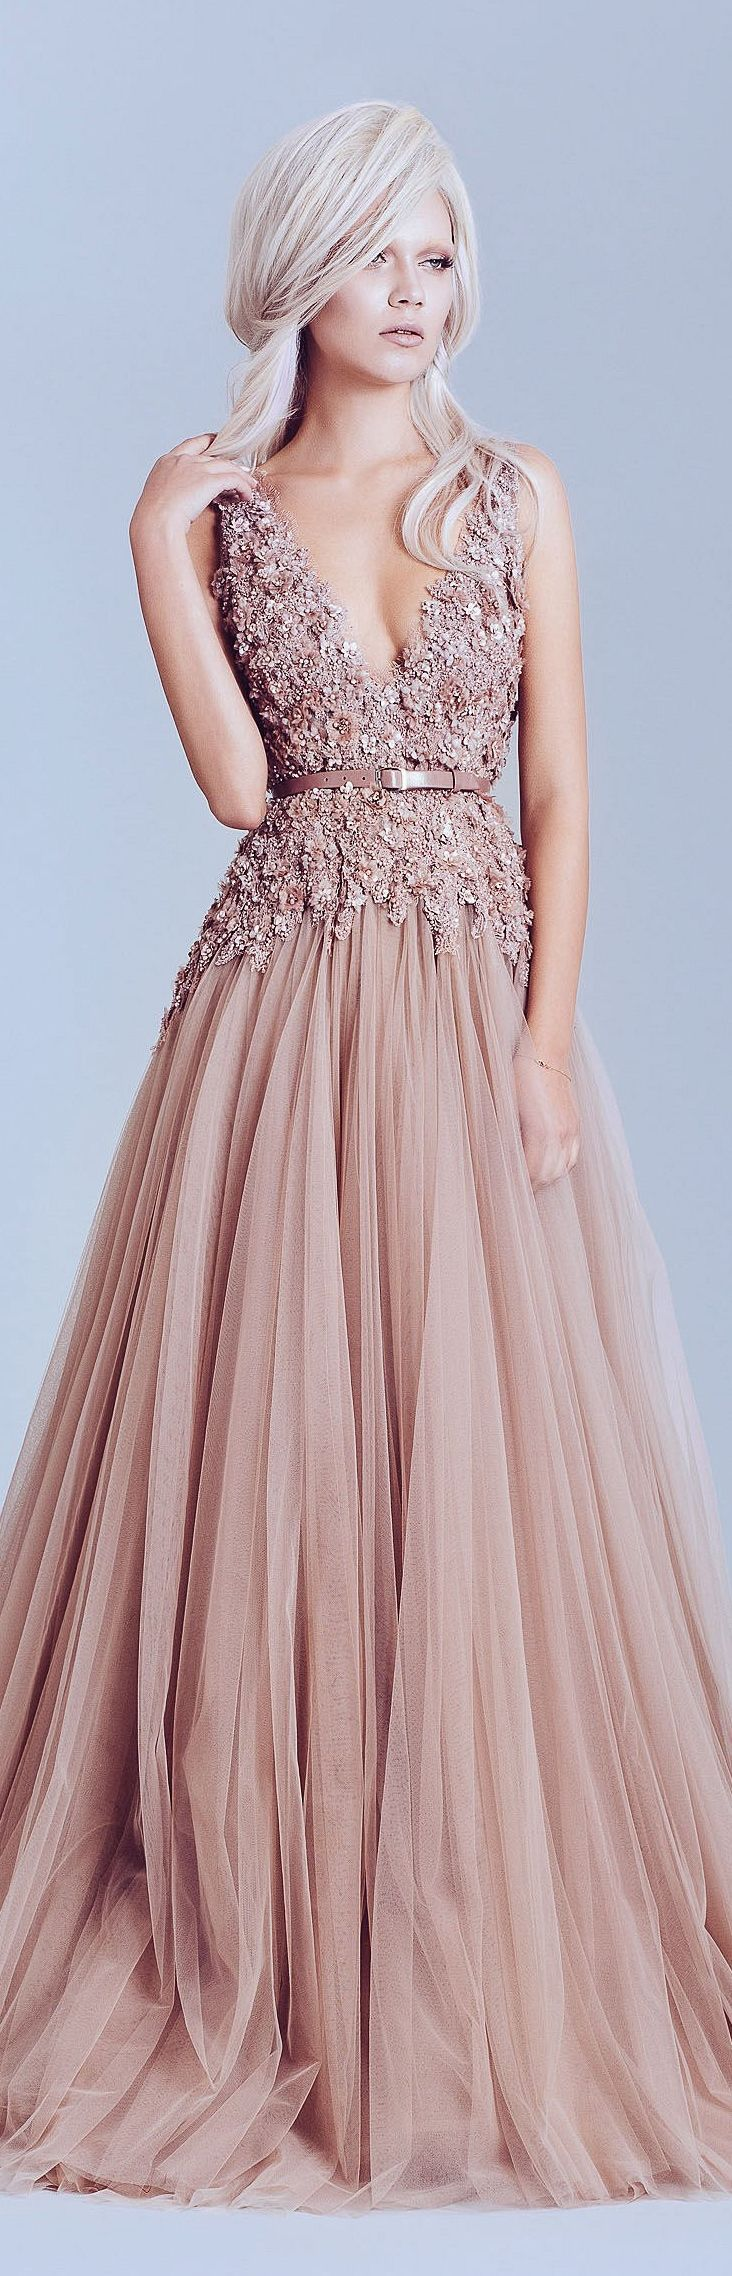 Nude and Blush Gowns - - ̗̀ Pinterest:cookieyum01  ̖́-